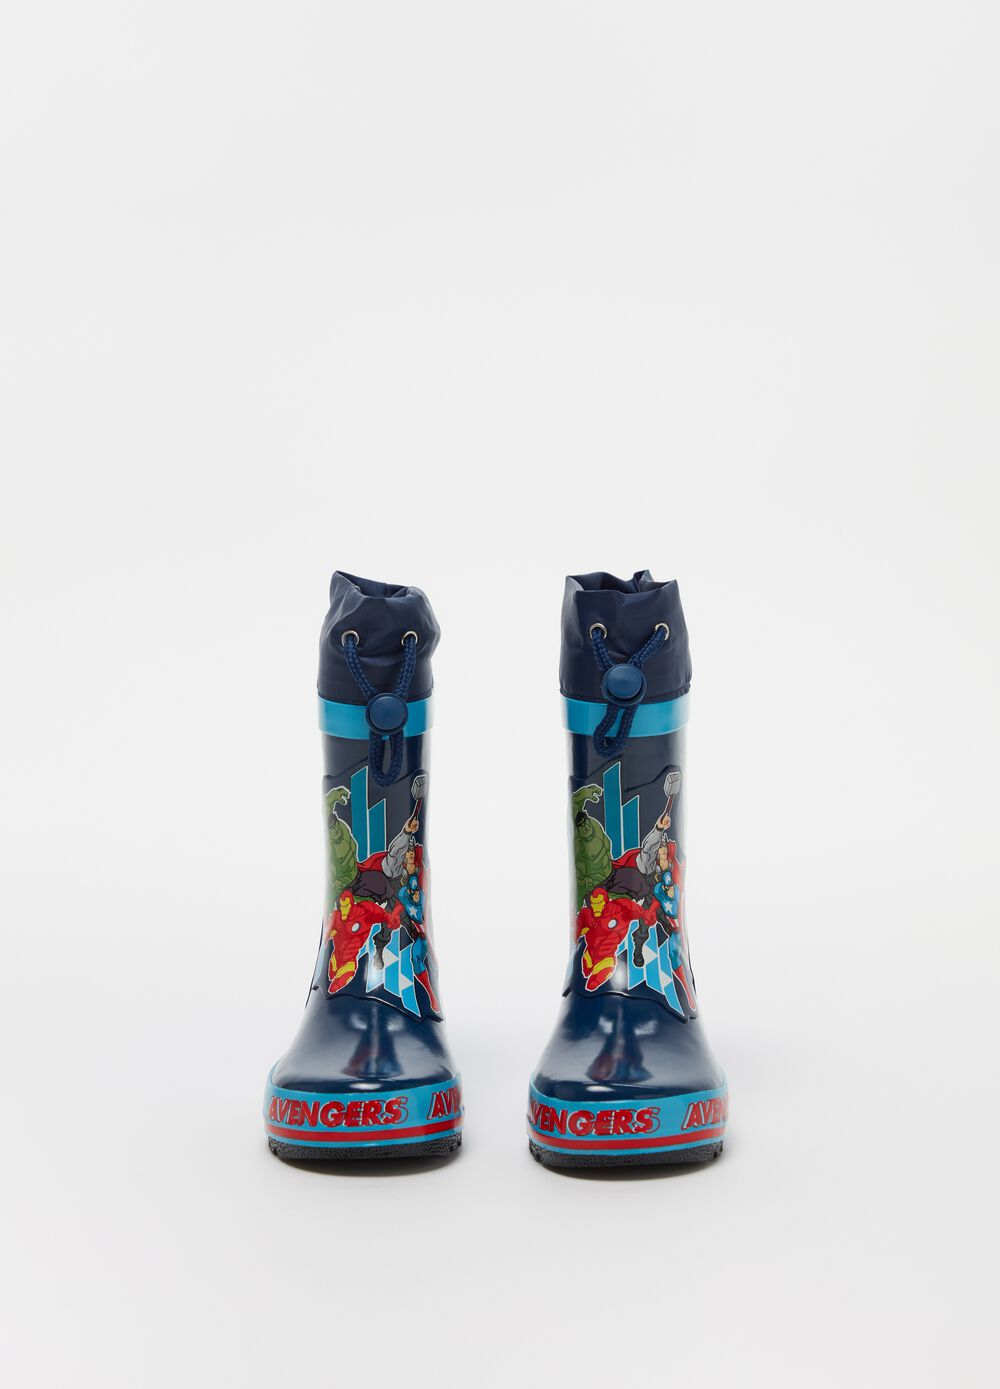 Avengers rain boots with drawstring